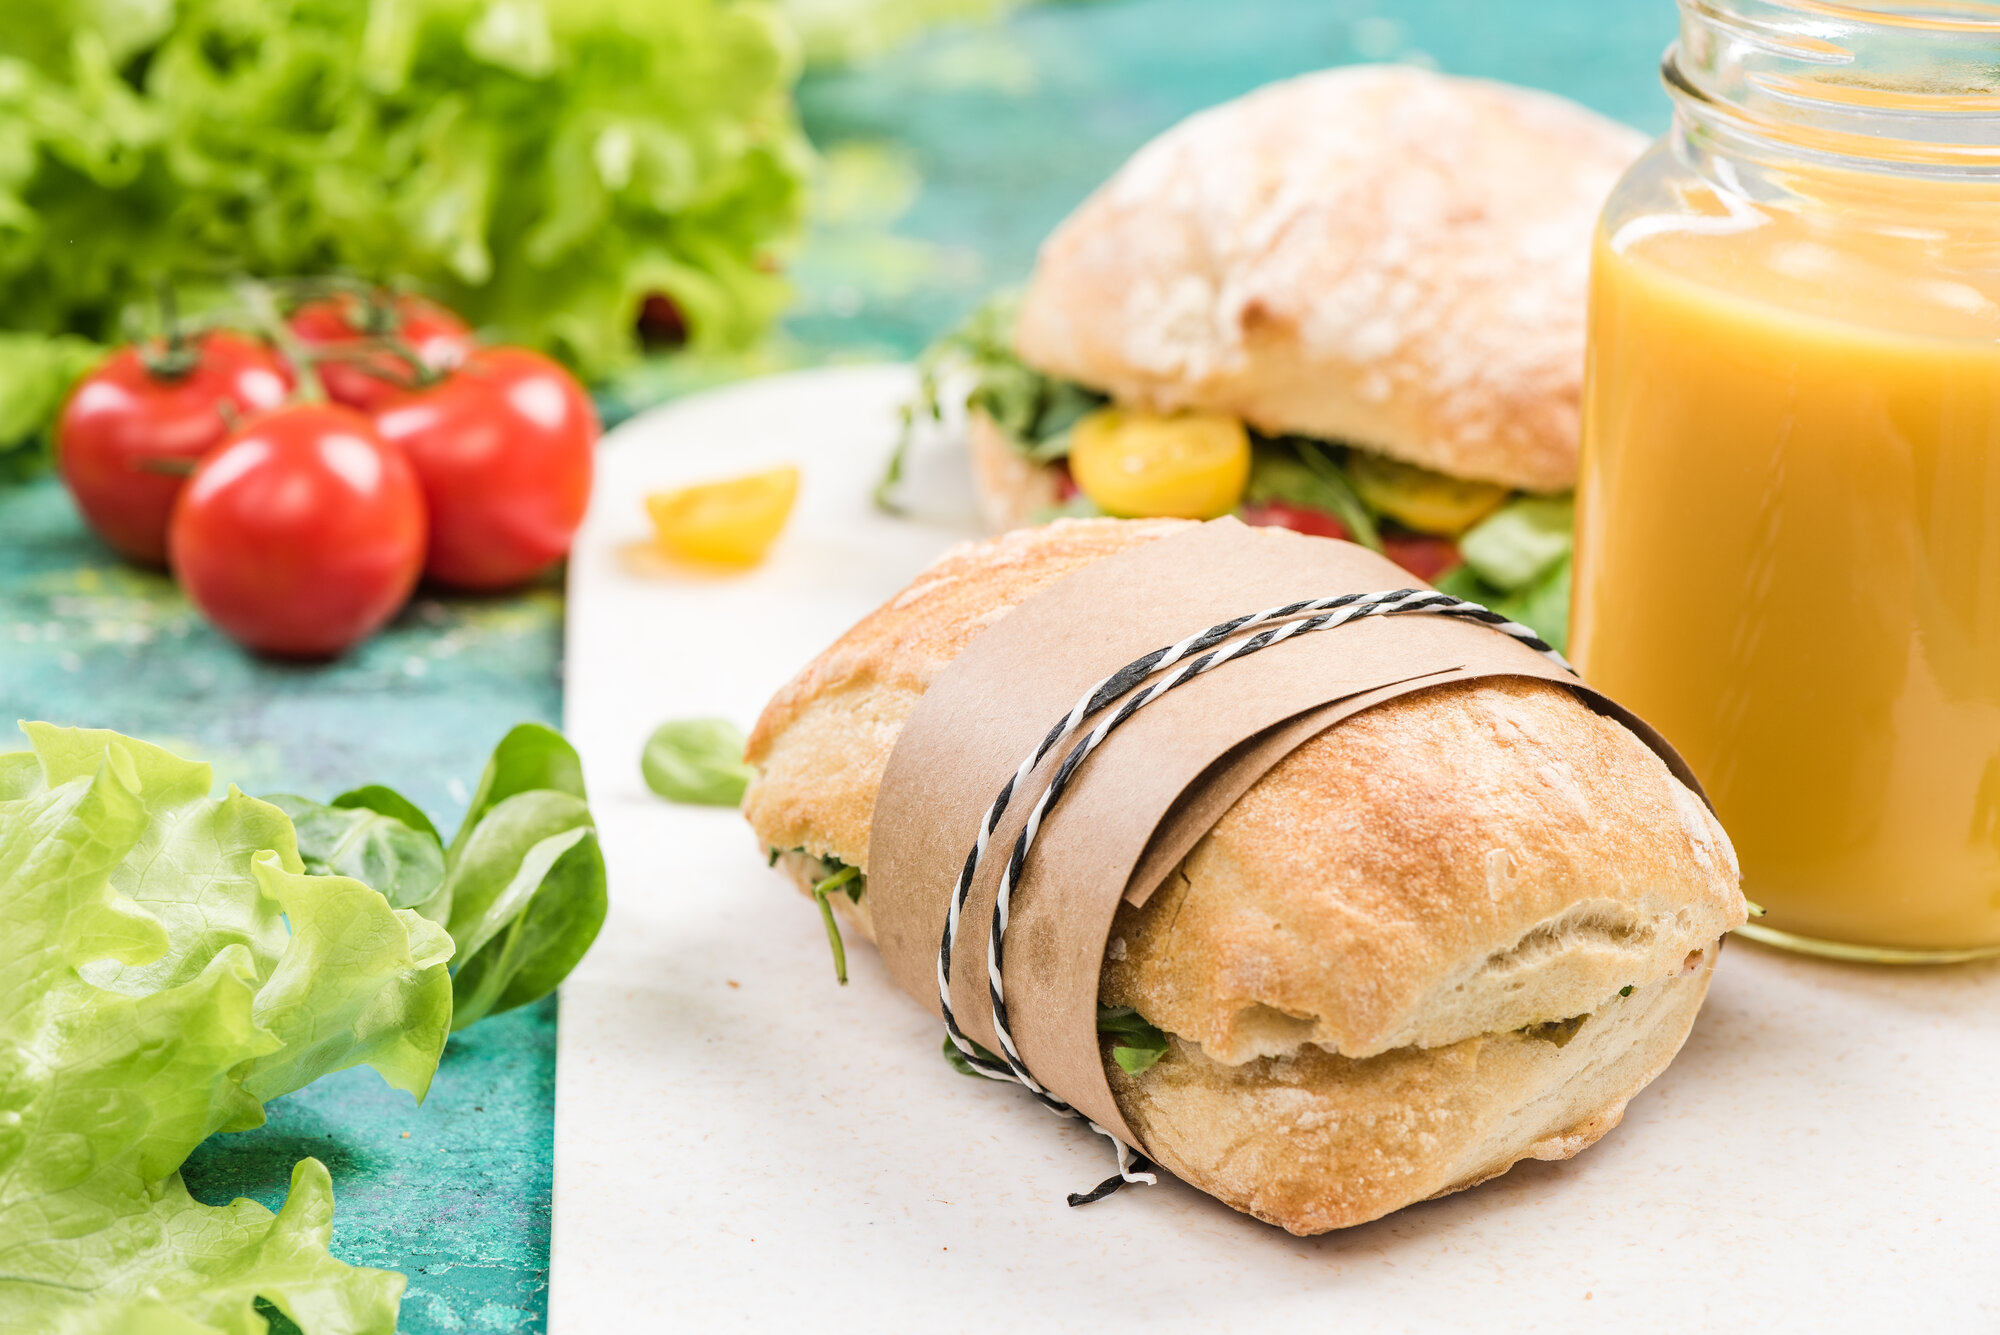 wrapped diet breakfast for lunch at work or school P3NBLRD - Startseite